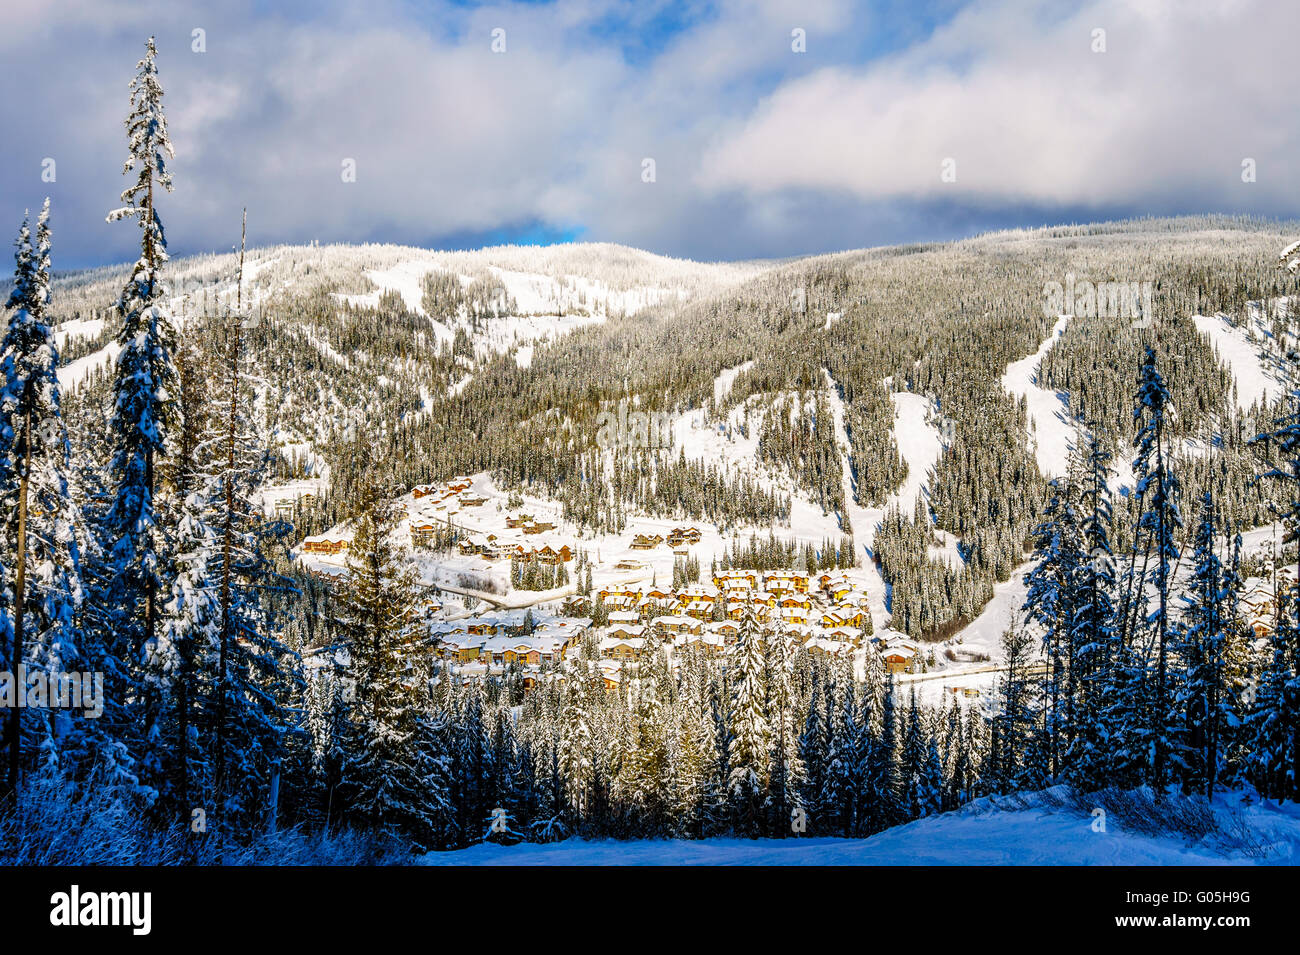 The winter sport village of Sun Peaks in the Shuswap Highlands of British Columbia on a nice winter day - Stock Image